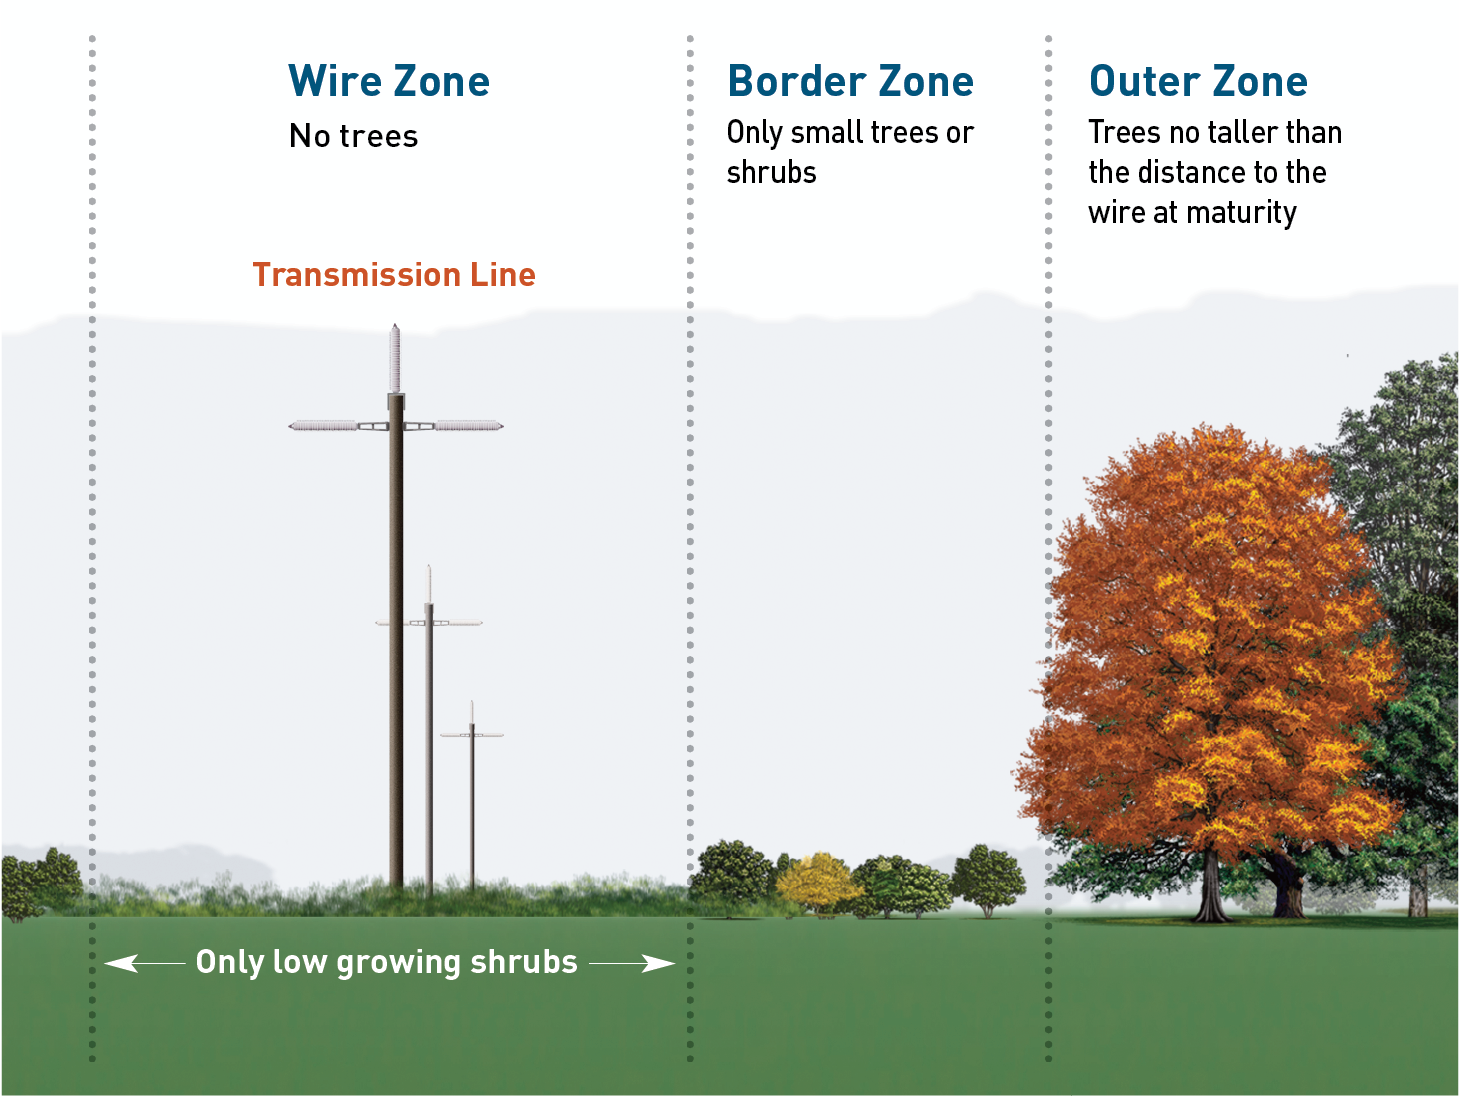 Planting guidelines near distribution lines: In the wire zone, use only low-growing shrubs.